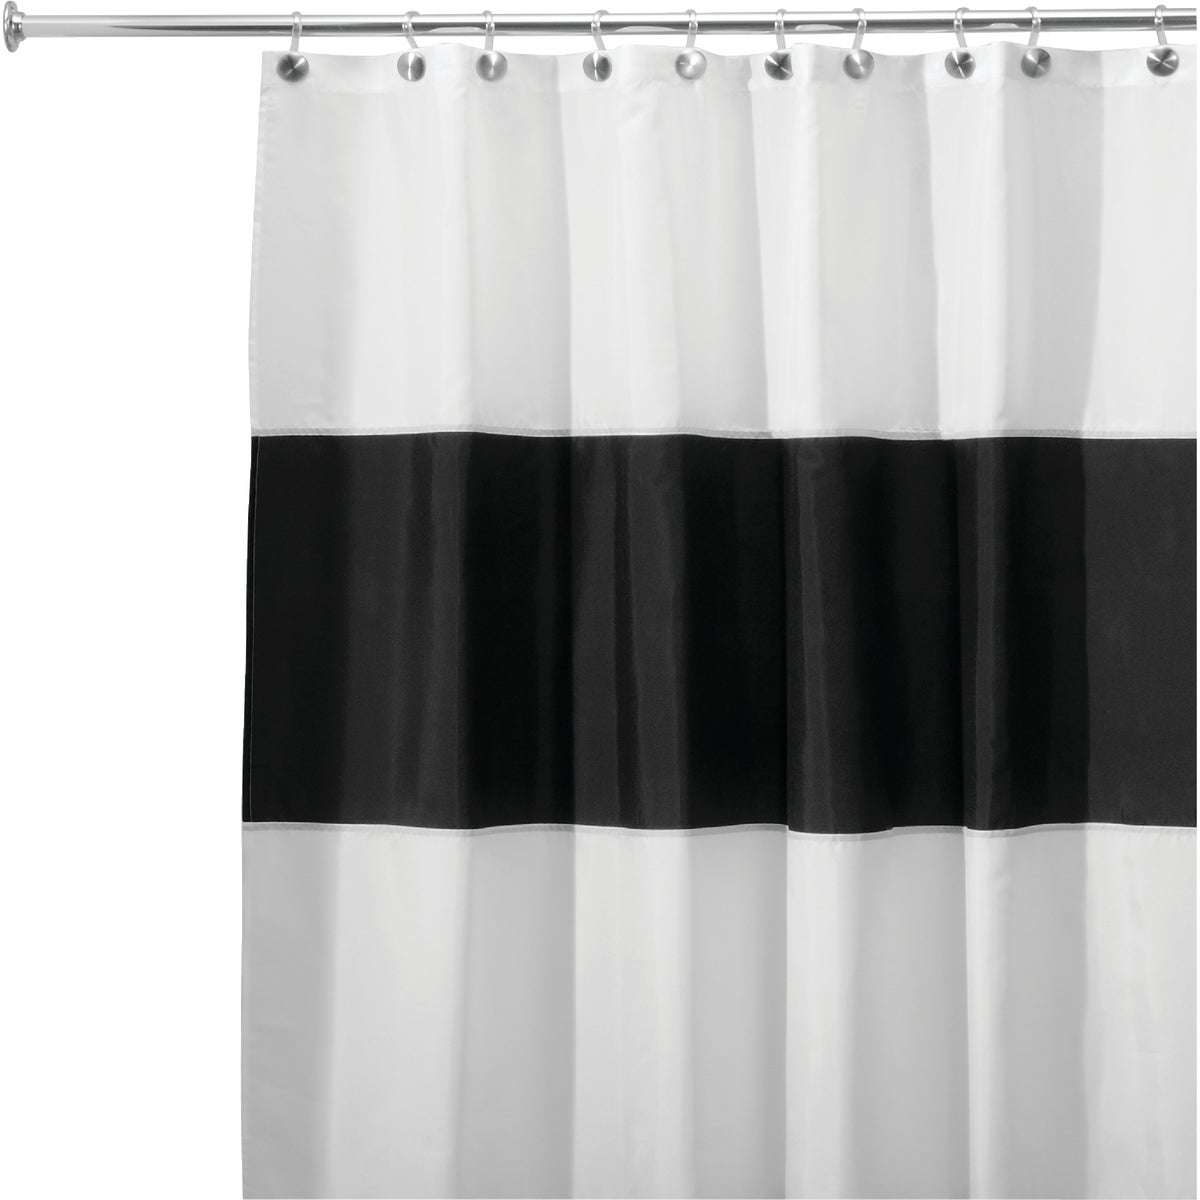 ZENO WP SHOWER CURTAIN - 26910 by Interdesign Inc